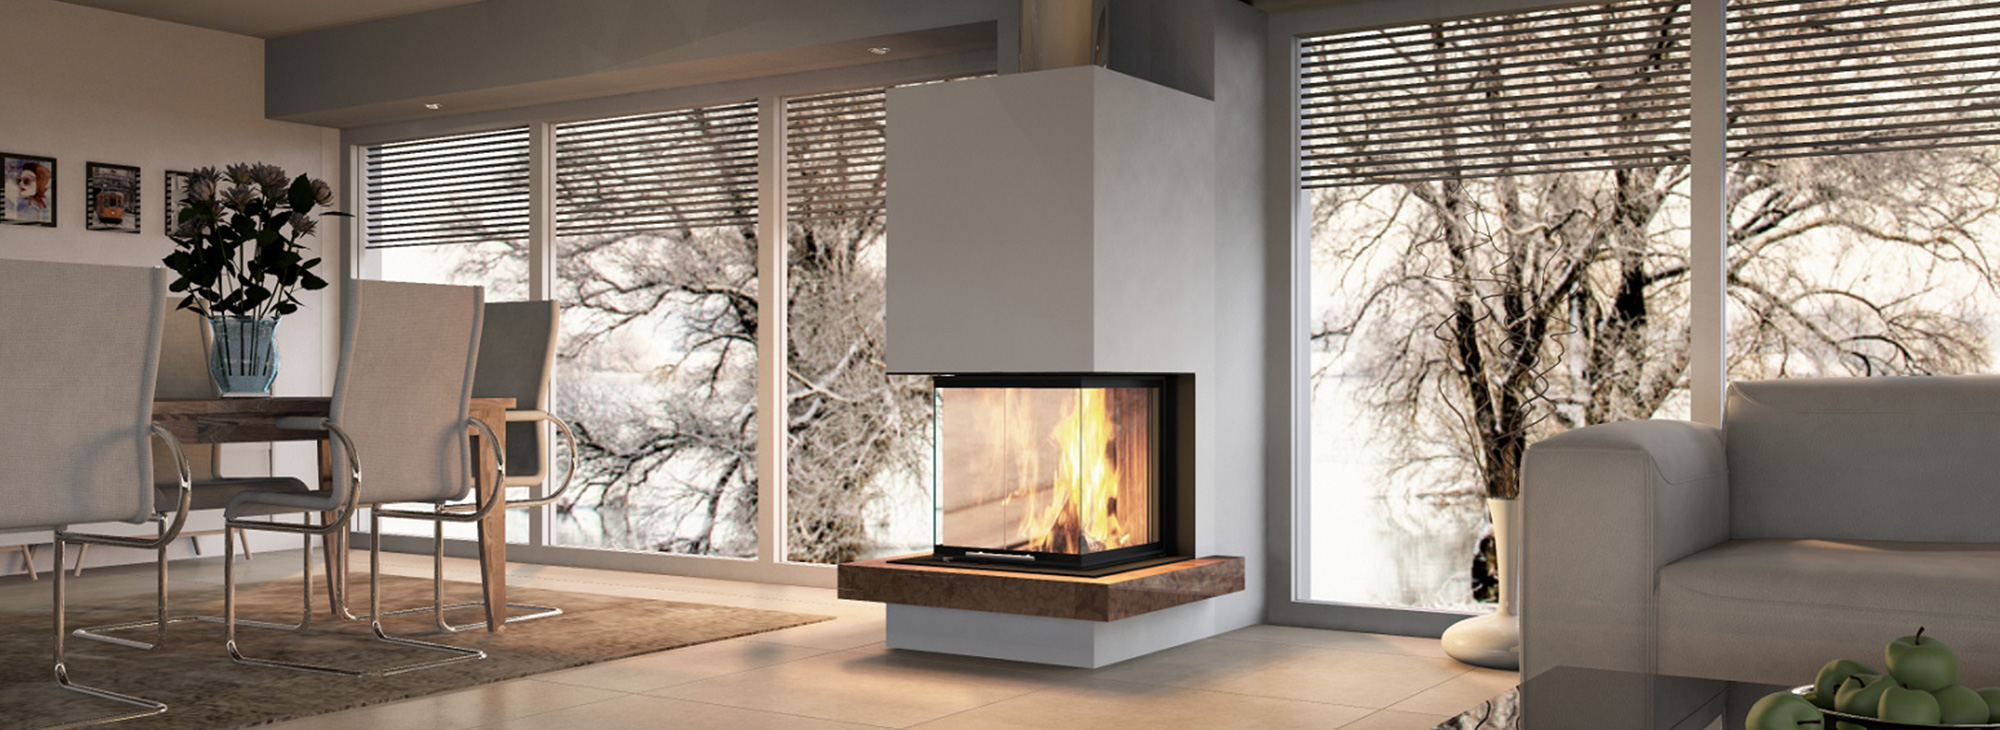 SILCA® 250 KM is the approved calcium silicate board for fireplace and tiled stove construction.